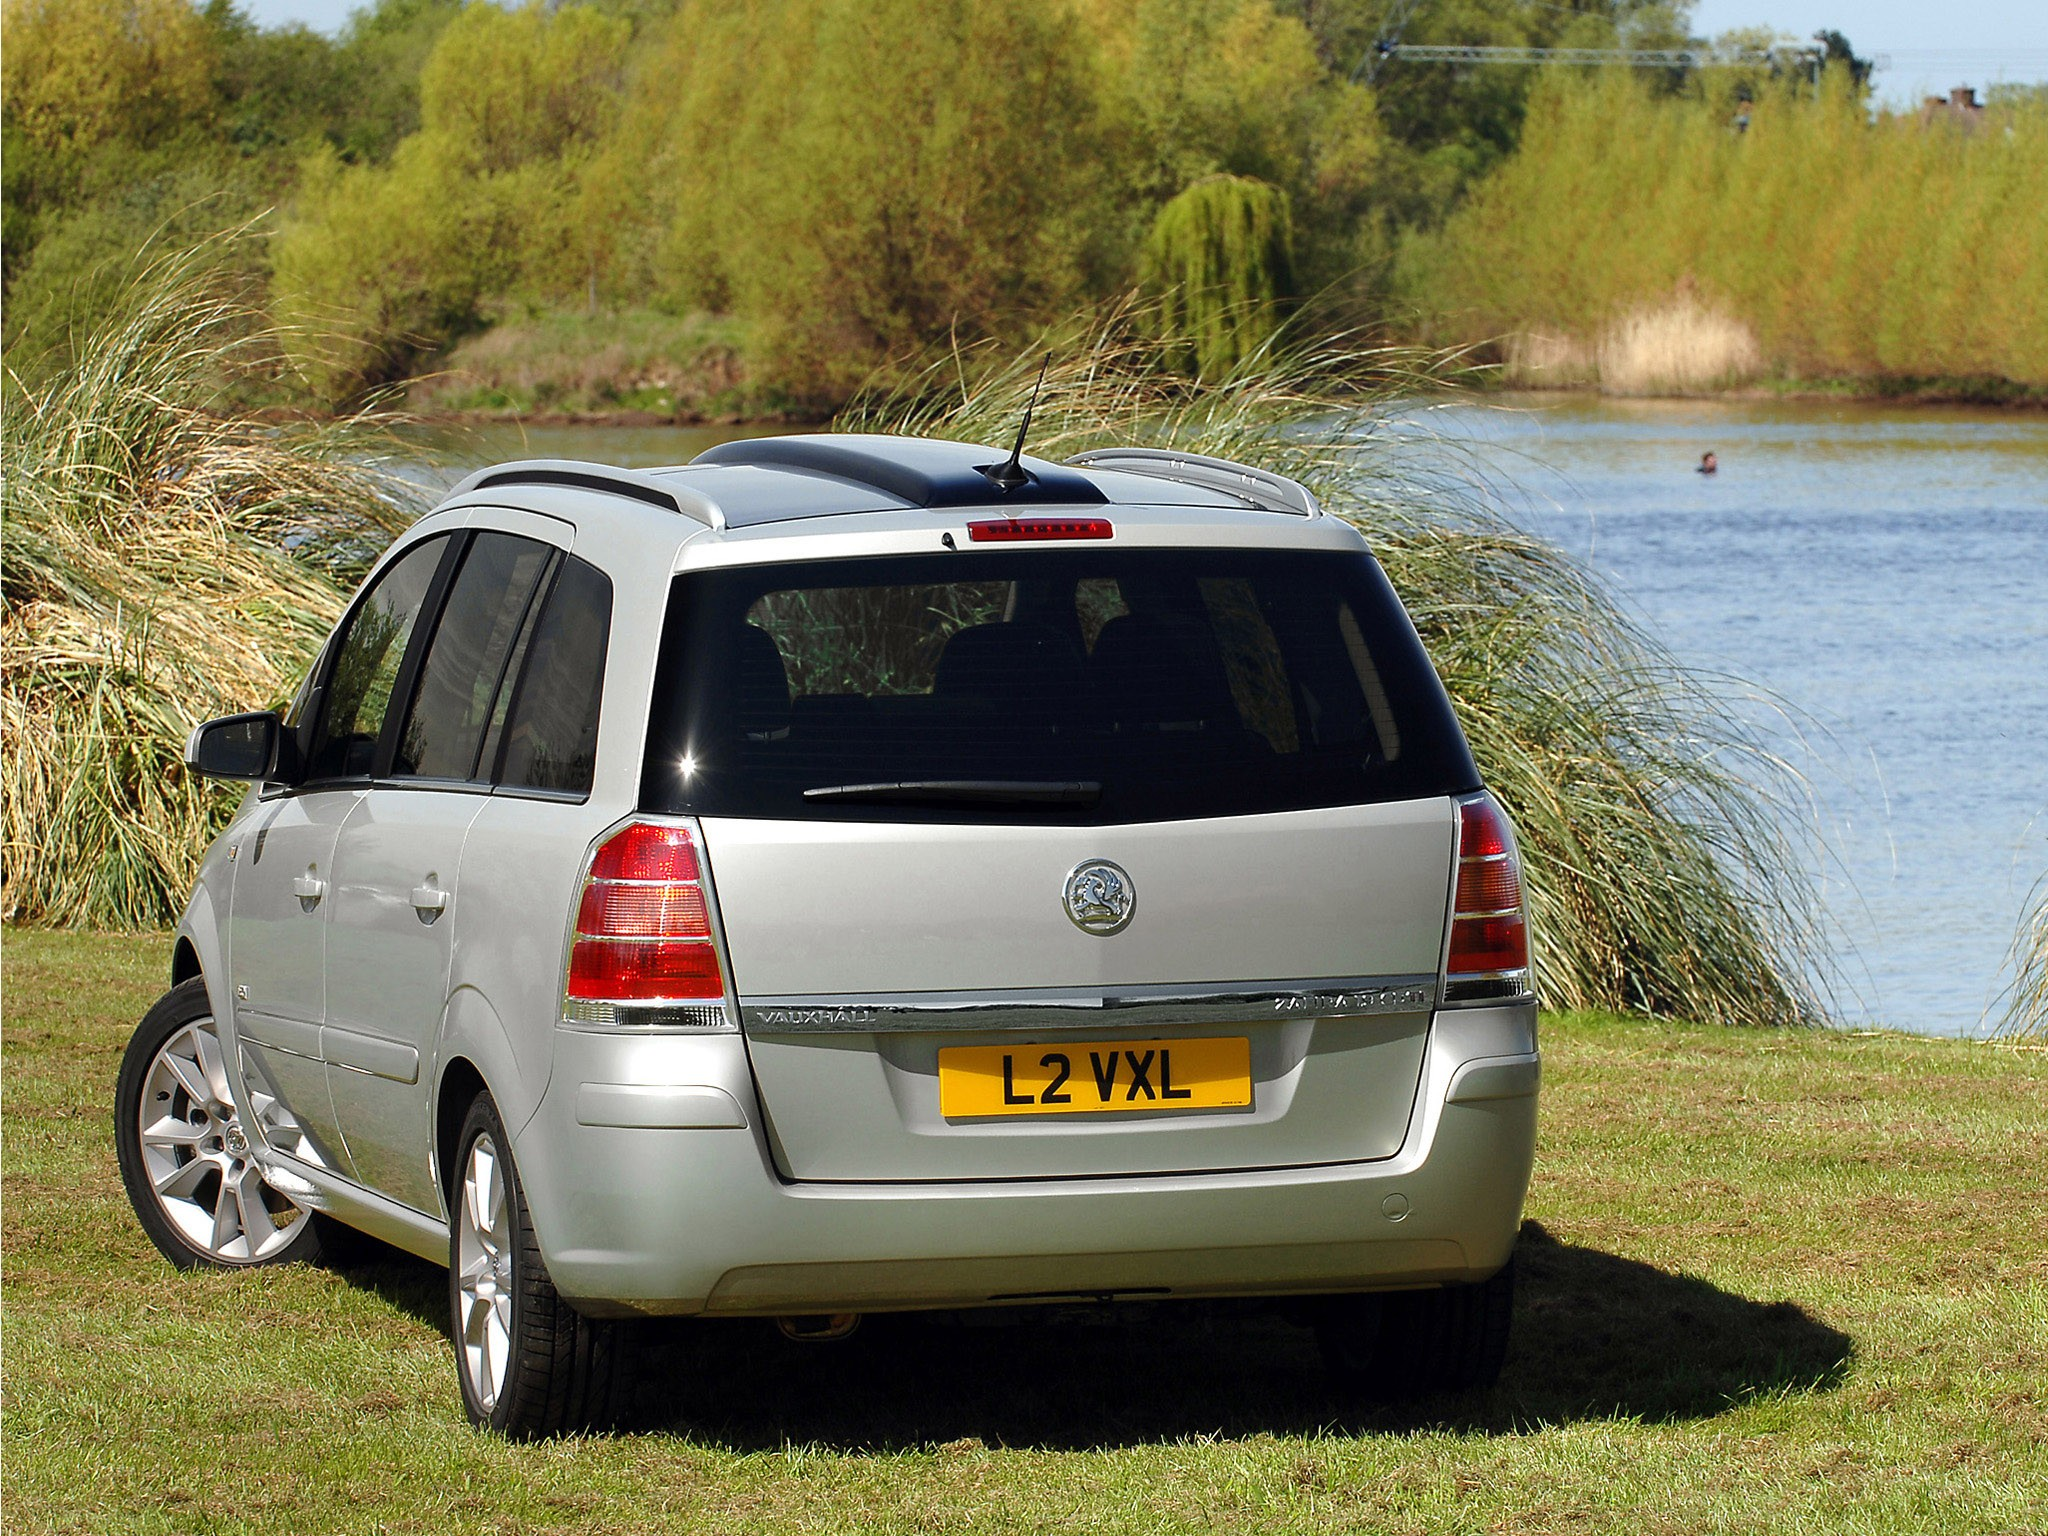 vauxhall zafira specs photos 2005 2006 2007 2008 2009 2010 2011 autoevolution. Black Bedroom Furniture Sets. Home Design Ideas